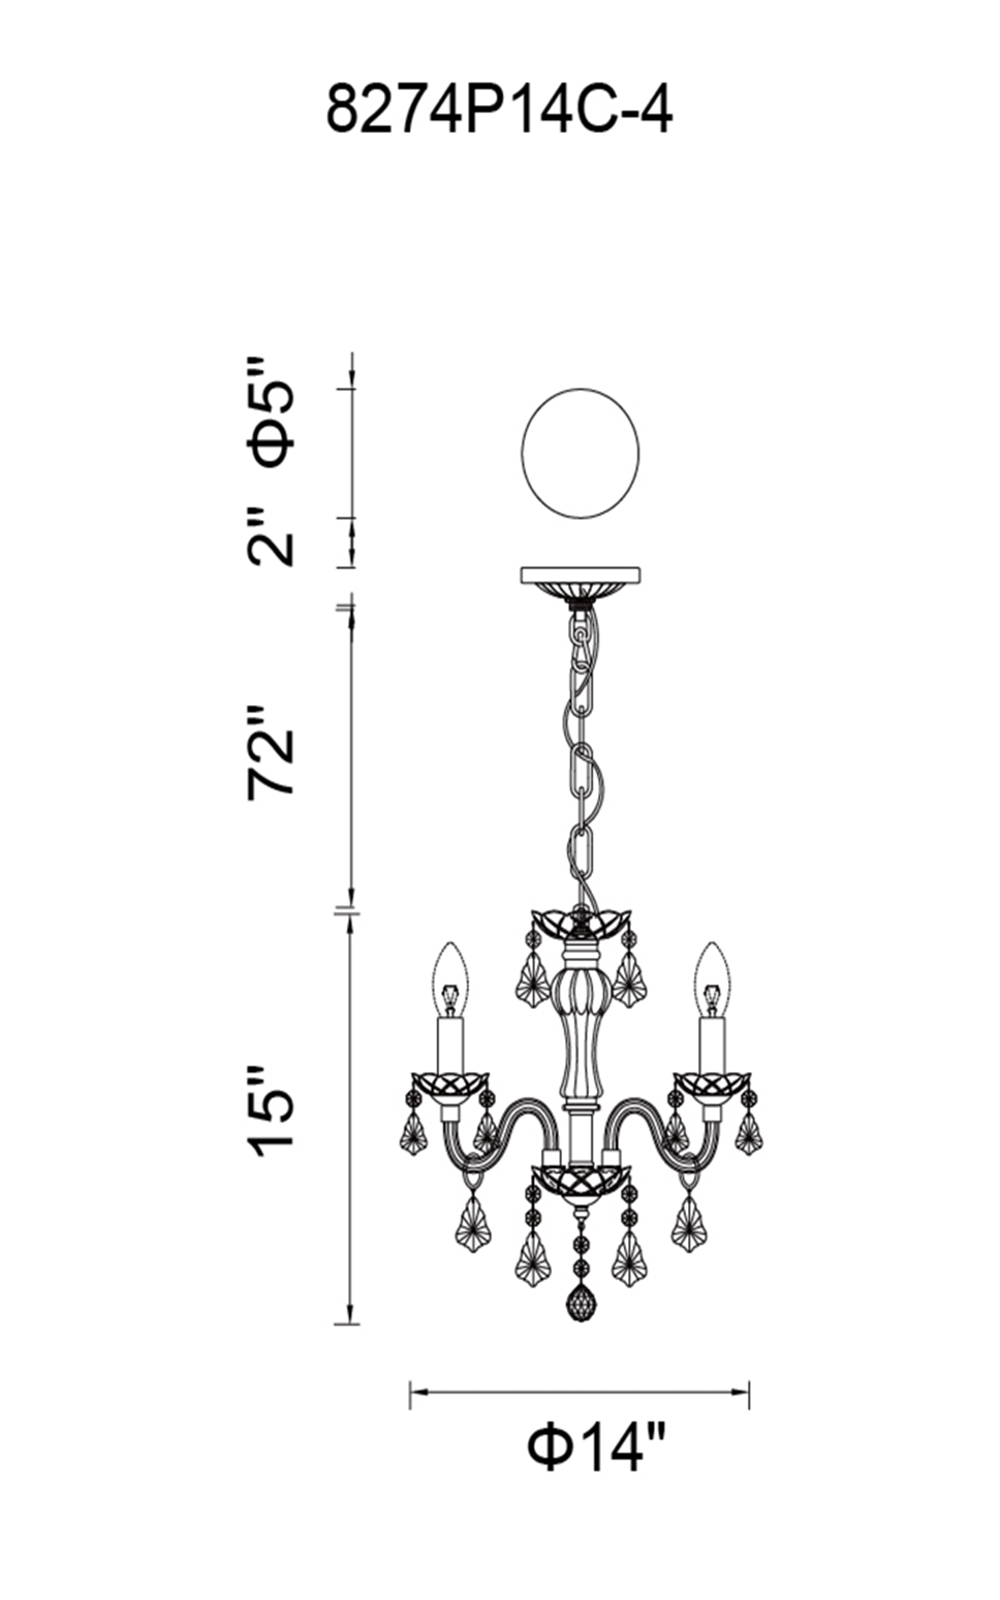 CWI Lighting Princeton 4 Light Up Chandelier With Chrome Finish Model: 8274P14C-4 Line Drawing